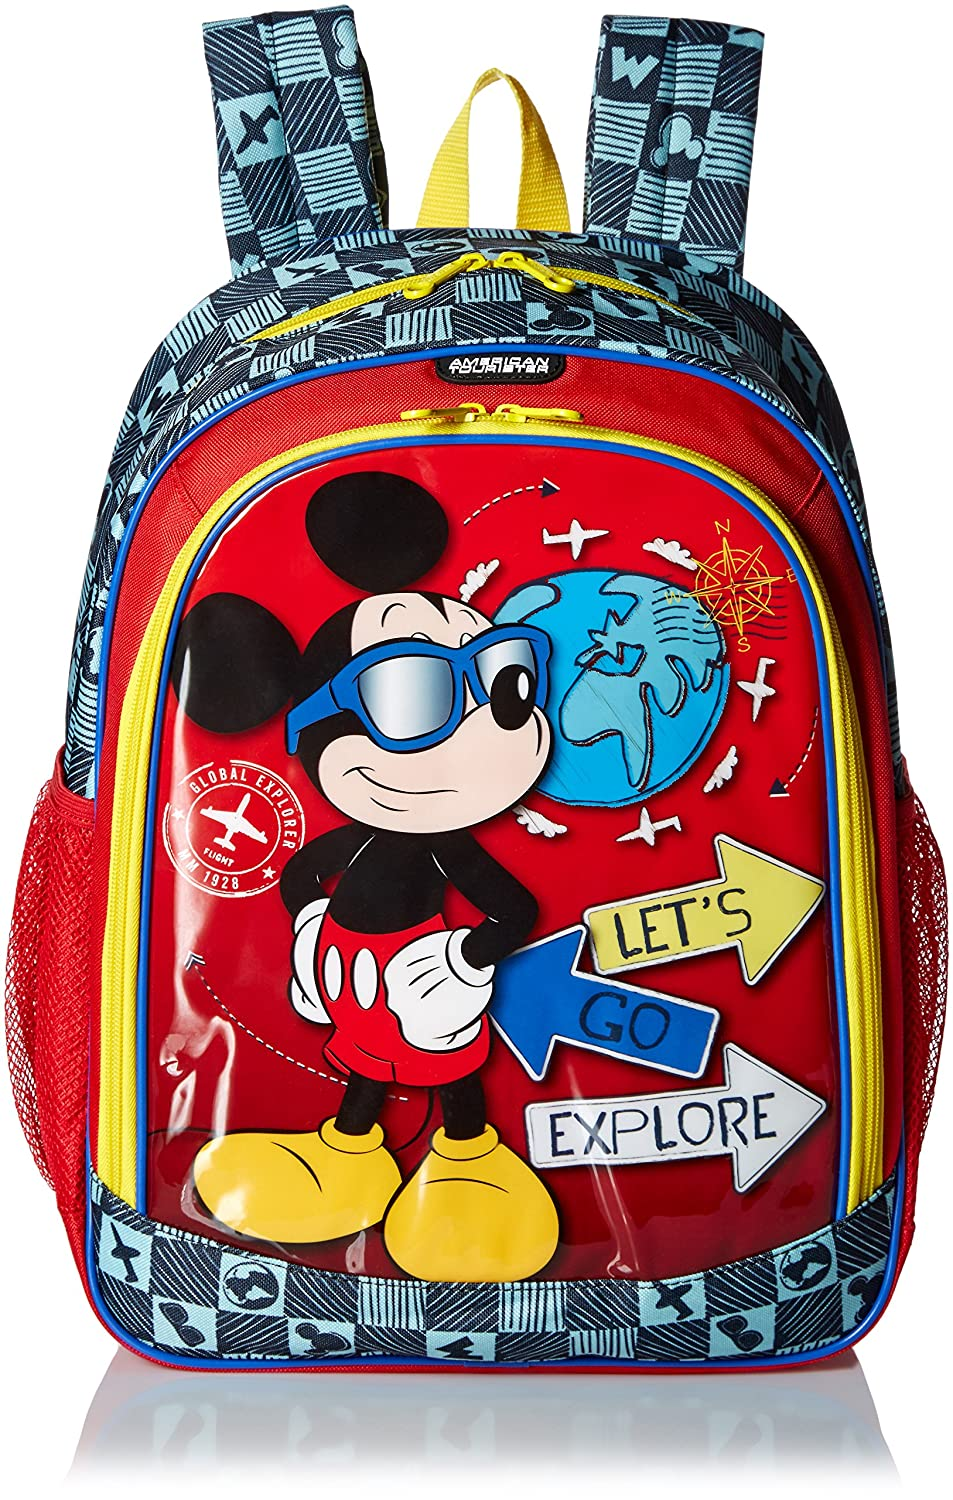 American Tourister Disney Mickey Mouse Backpack Softside